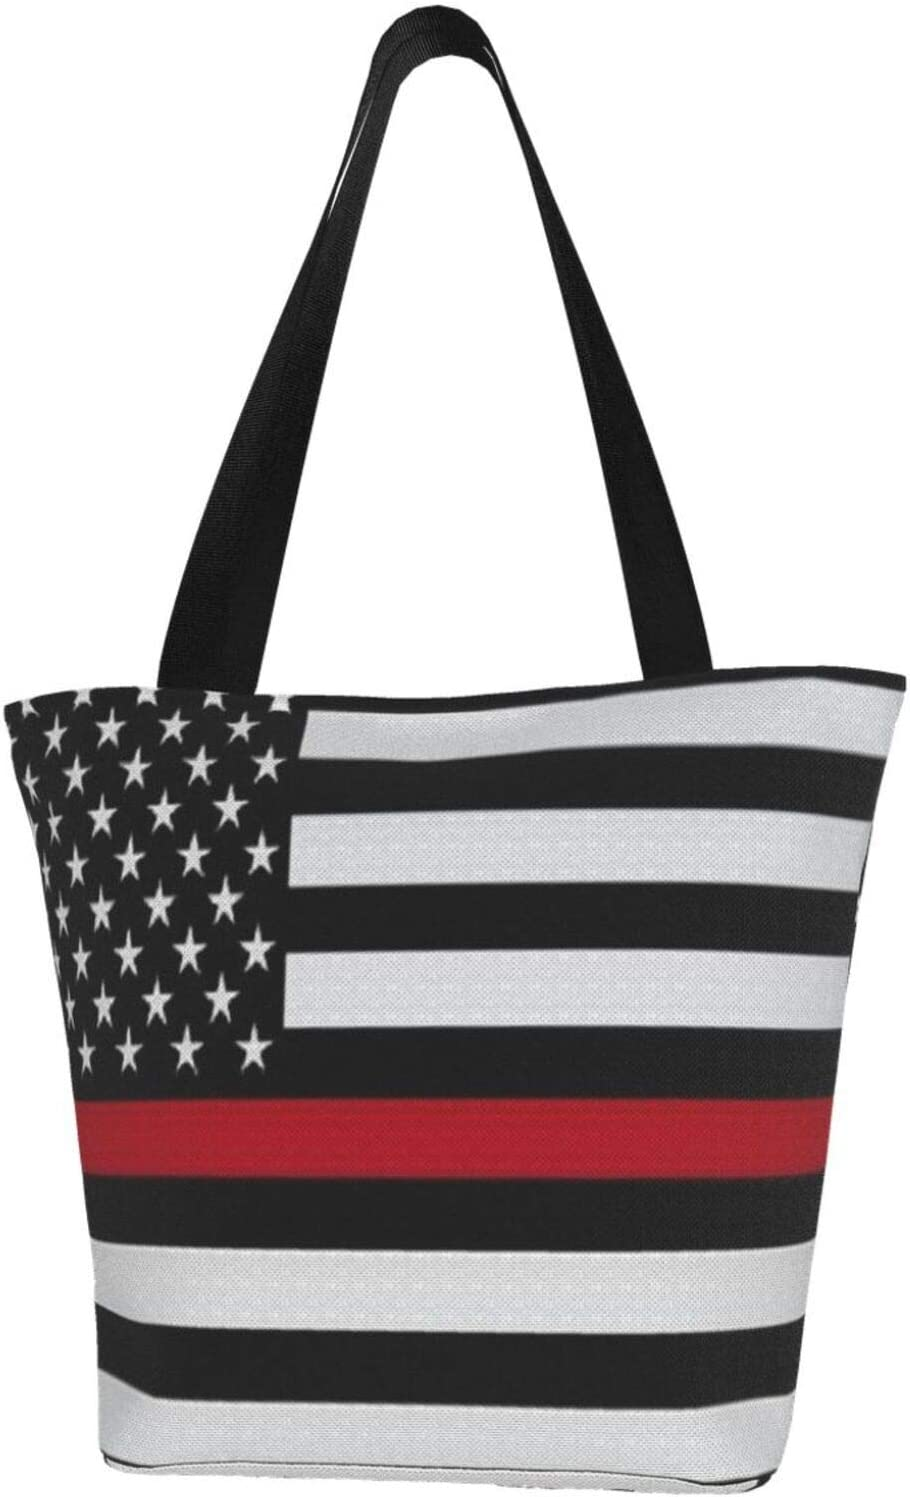 antcreptson Firefighter Red Line Flag Polyester Shopping Bag with Coin Purse, Tote Style